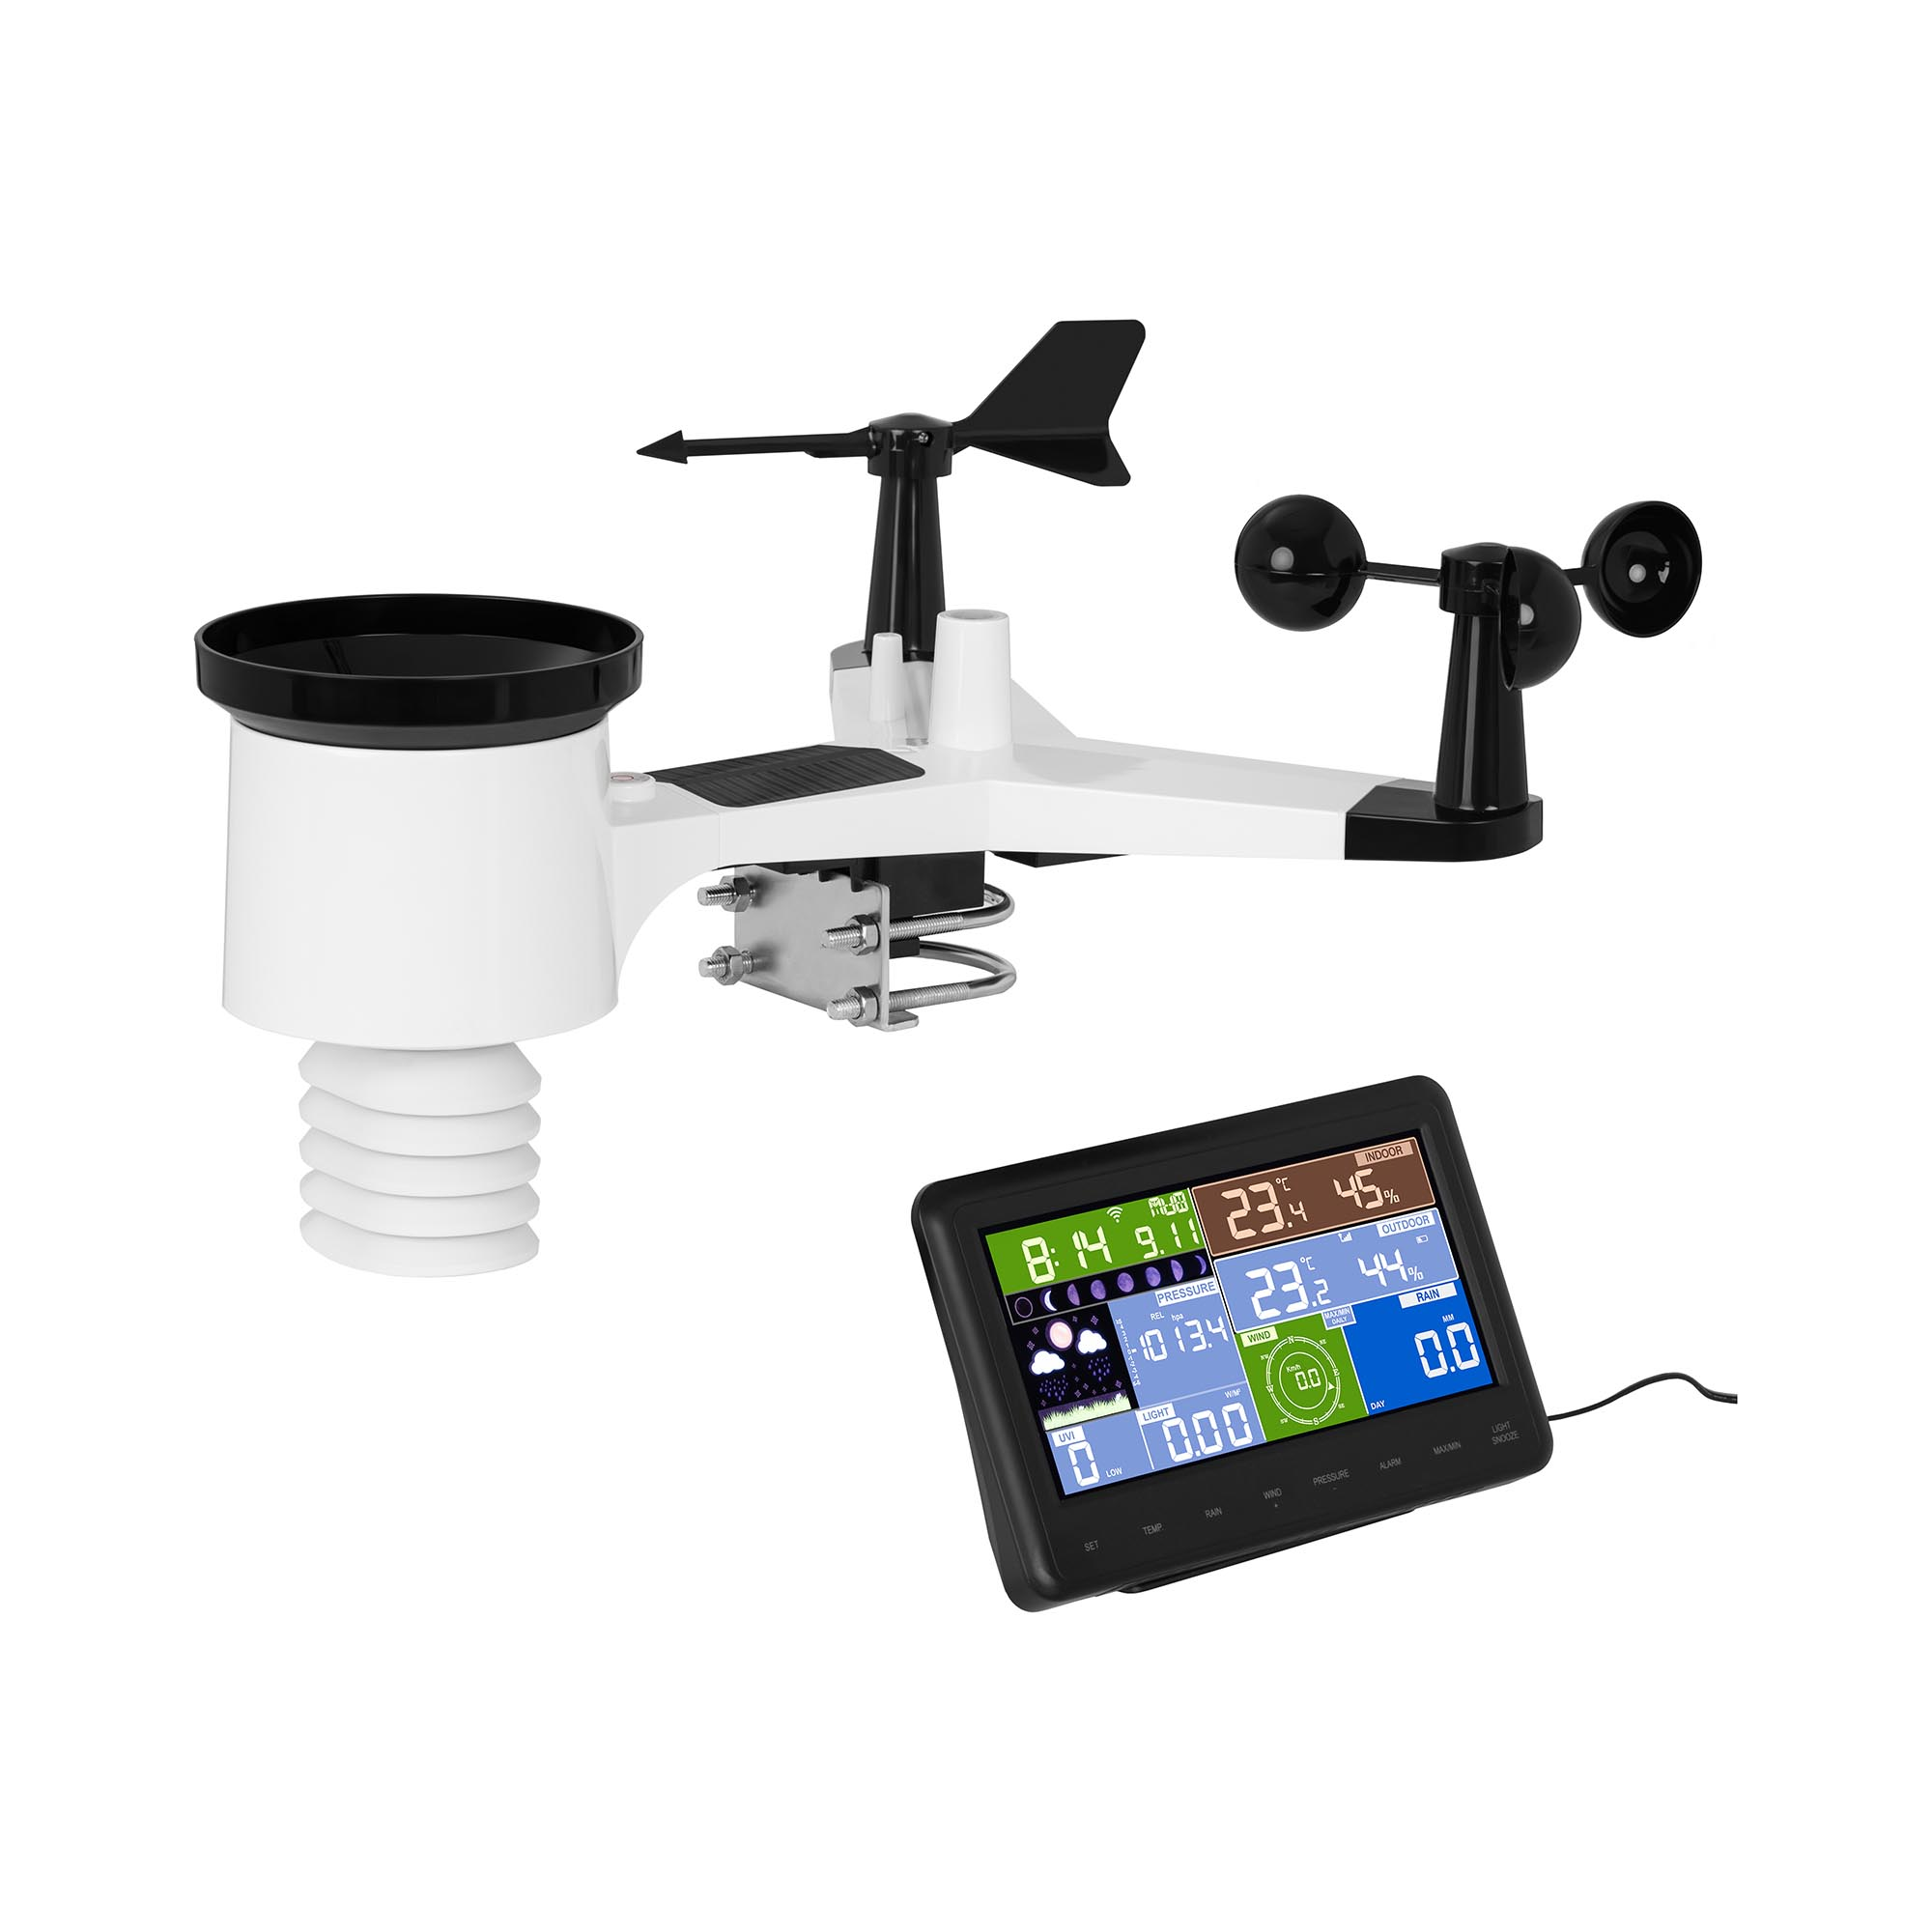 Steinberg Systems WiFi Wetterstation 10030455